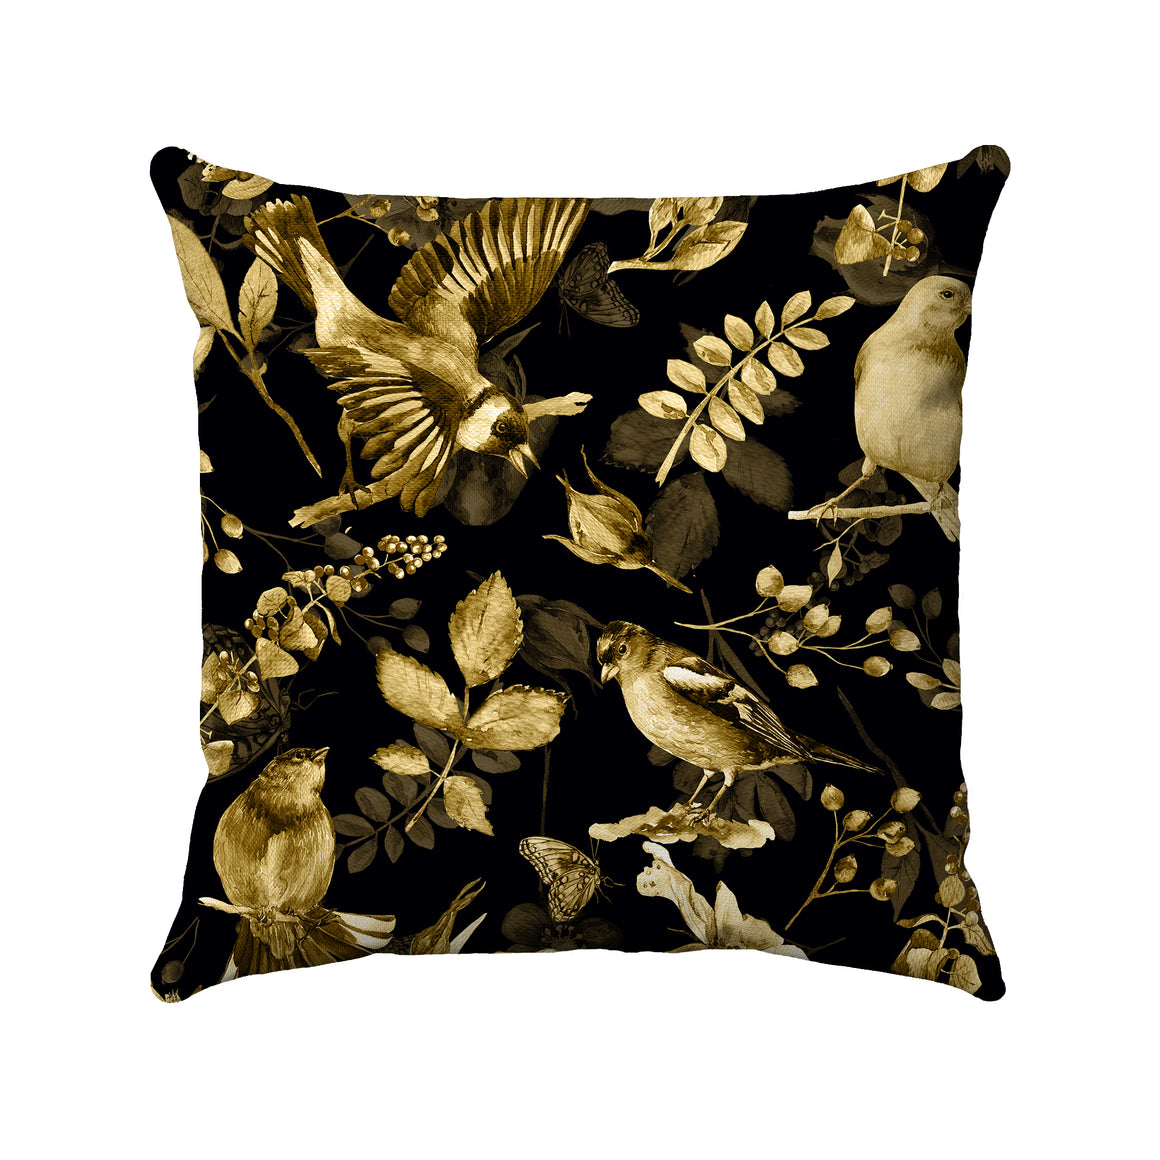 Gold sketches of birds, branches, flowers, and leaves scattered across a black background.